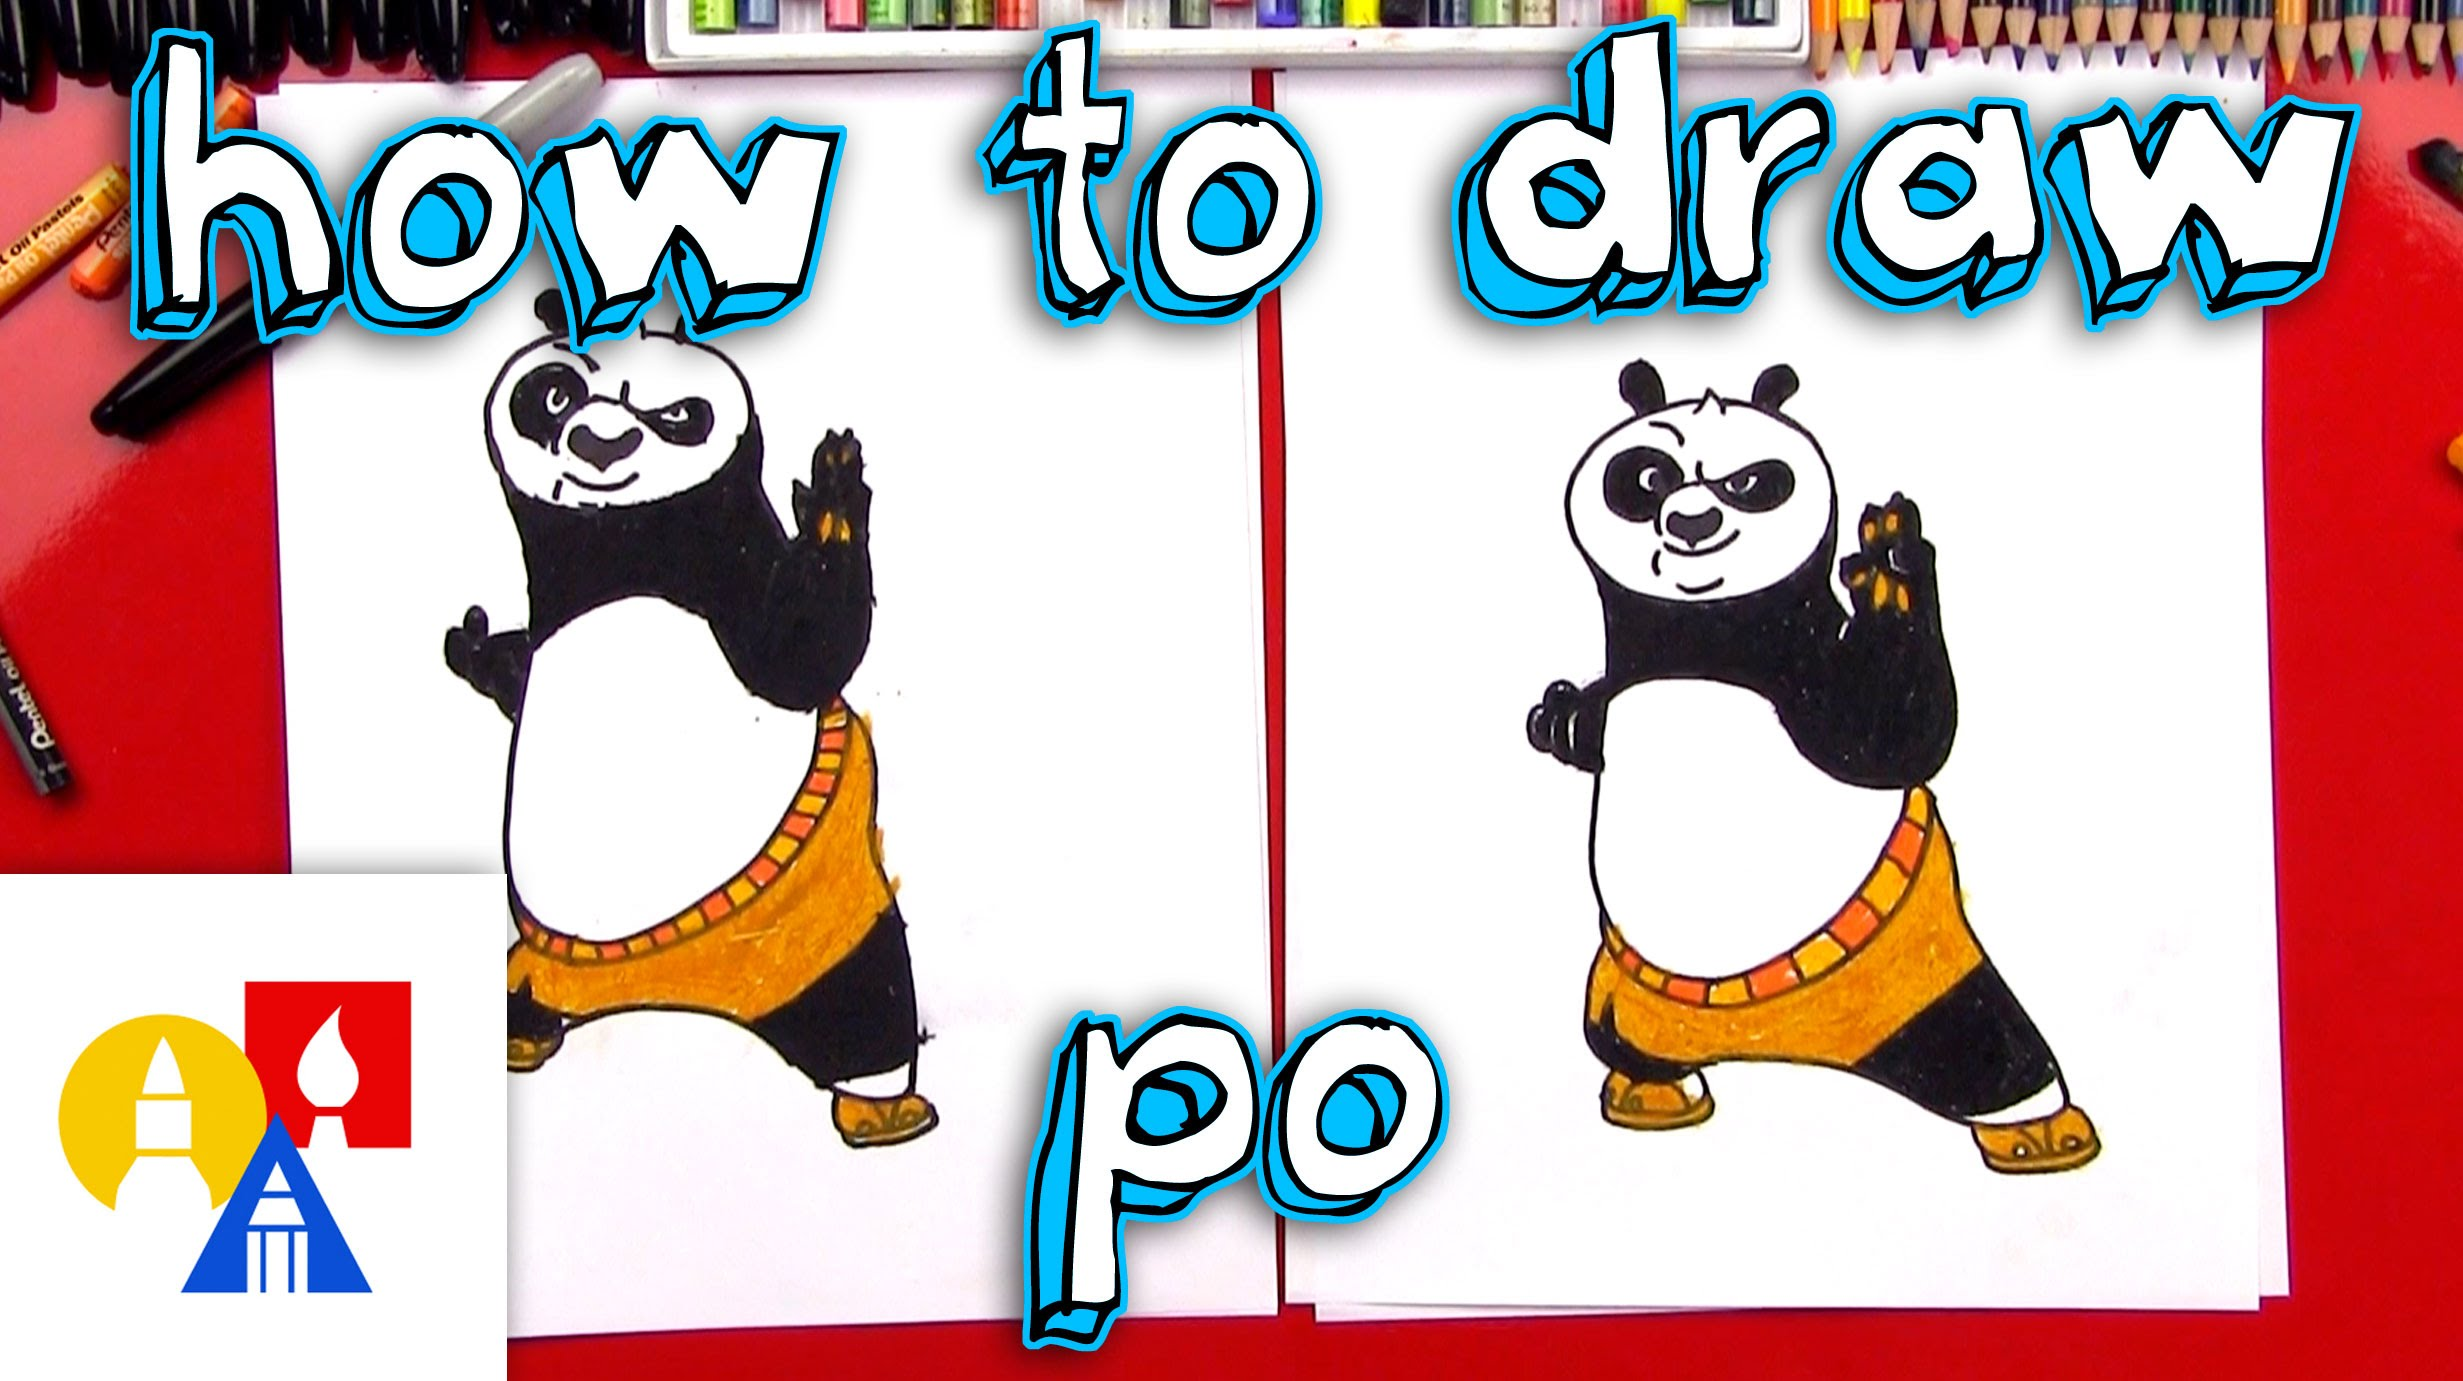 How To Draw Po From Kung Fu Panda.